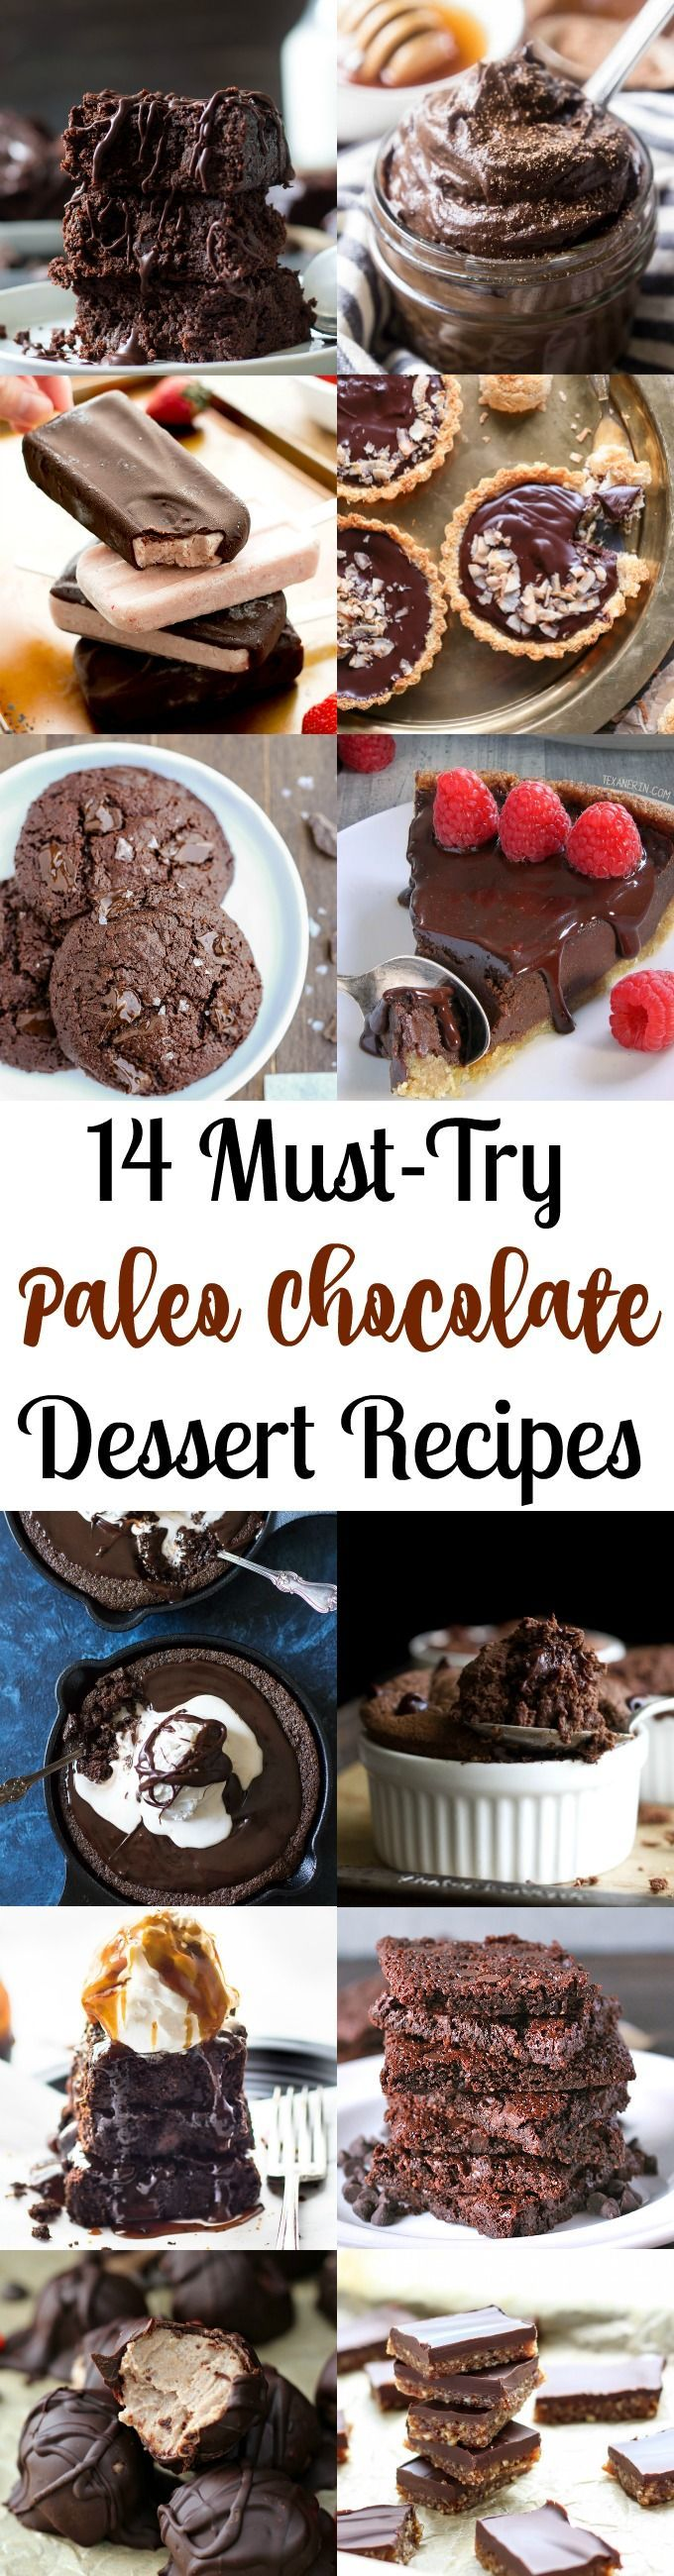 574 best Healthy Chocolate Recipes images on Pinterest | Paleo ...